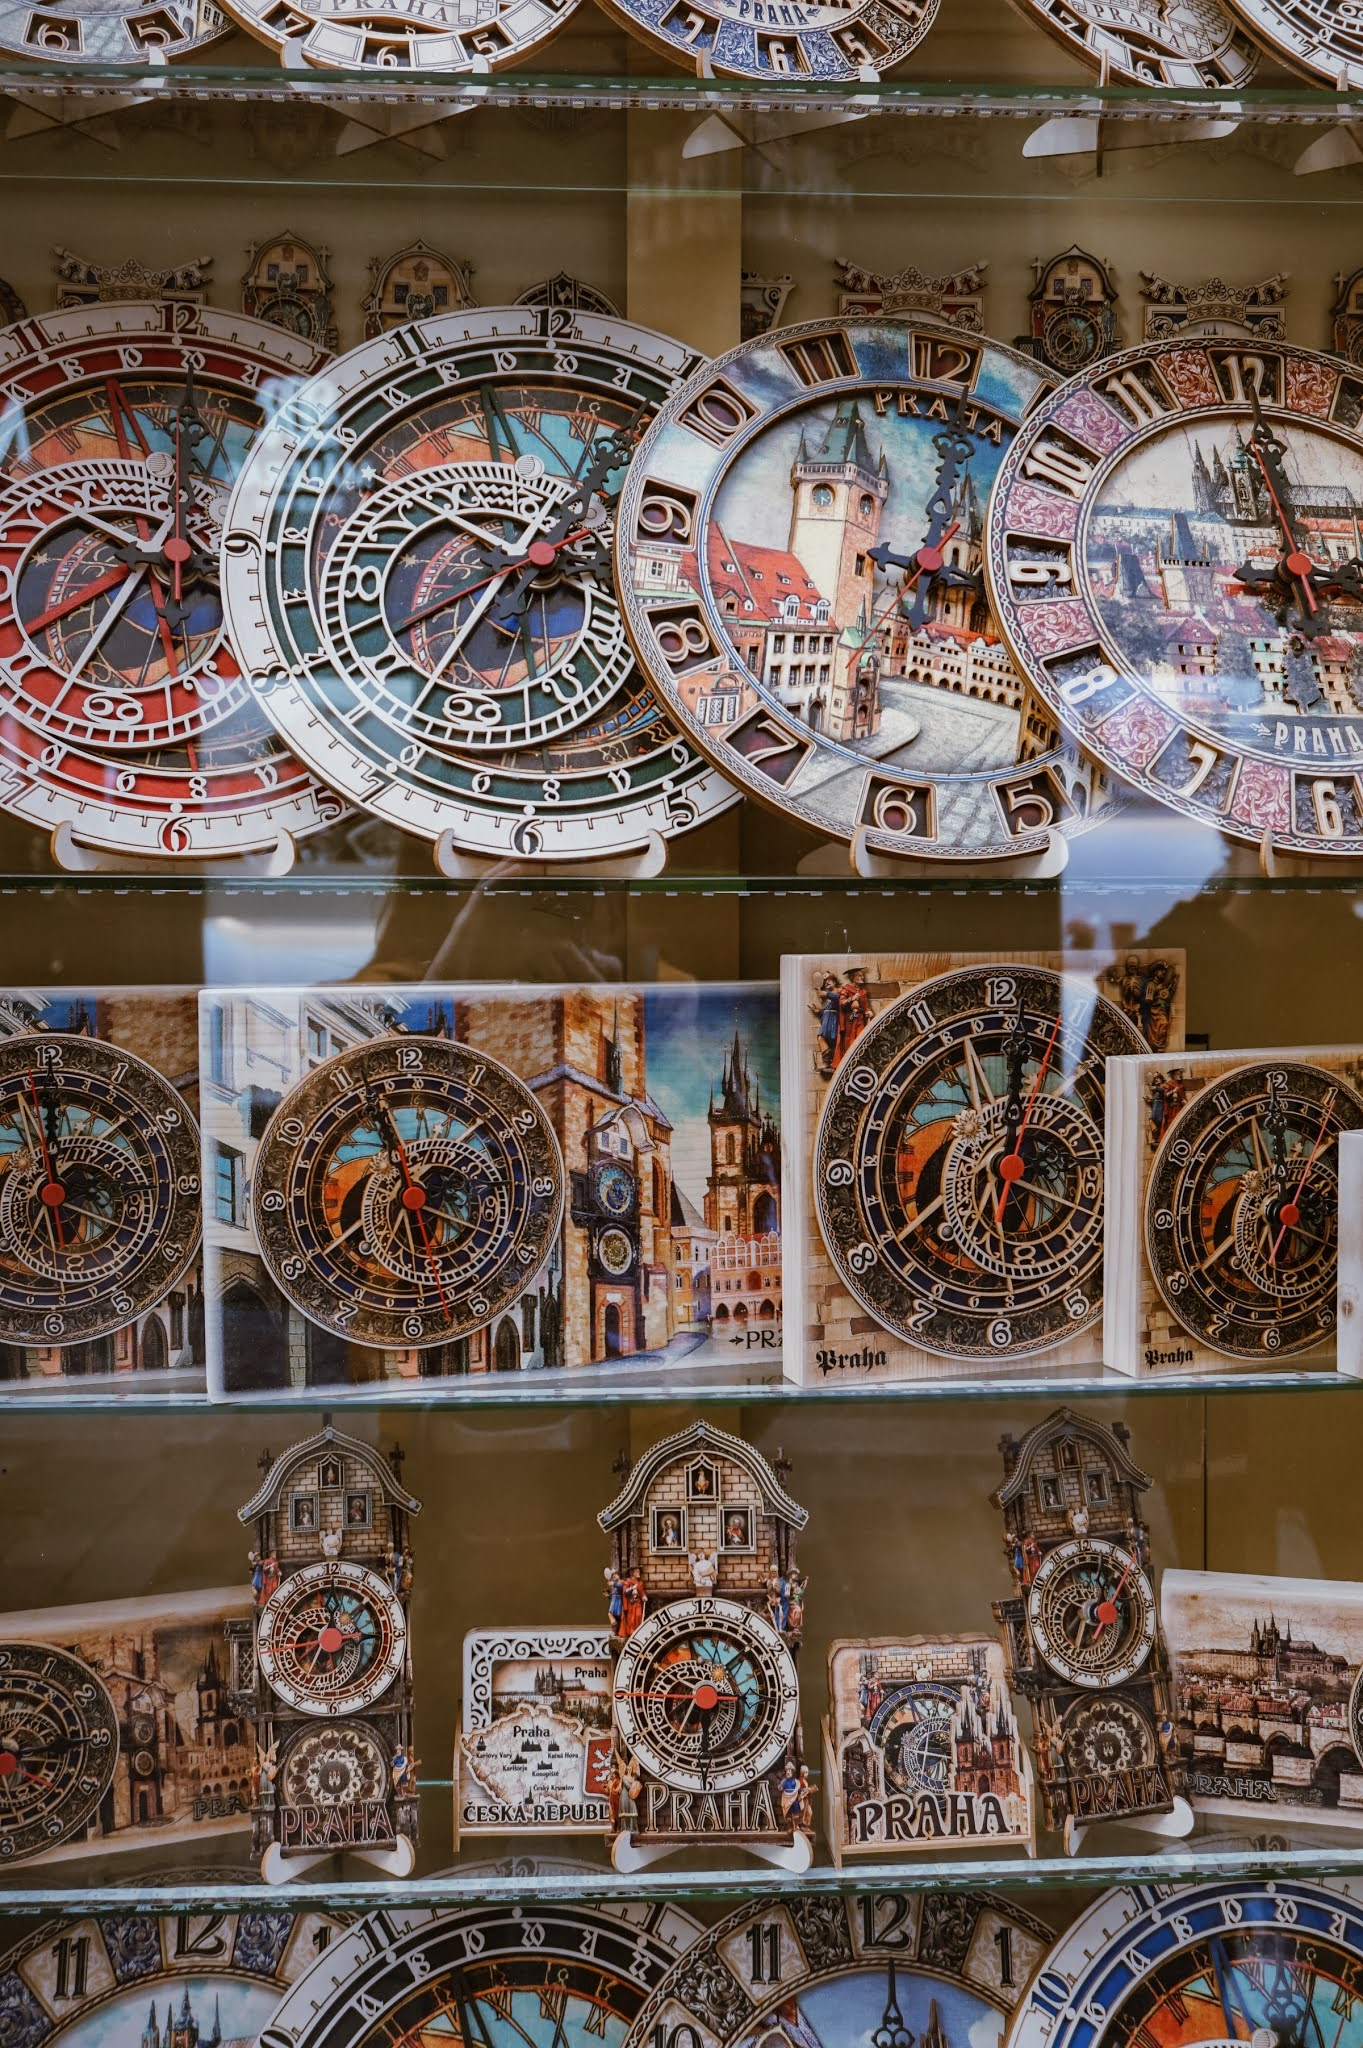 hanna-balan- pargue astronomical clock souvenir shop